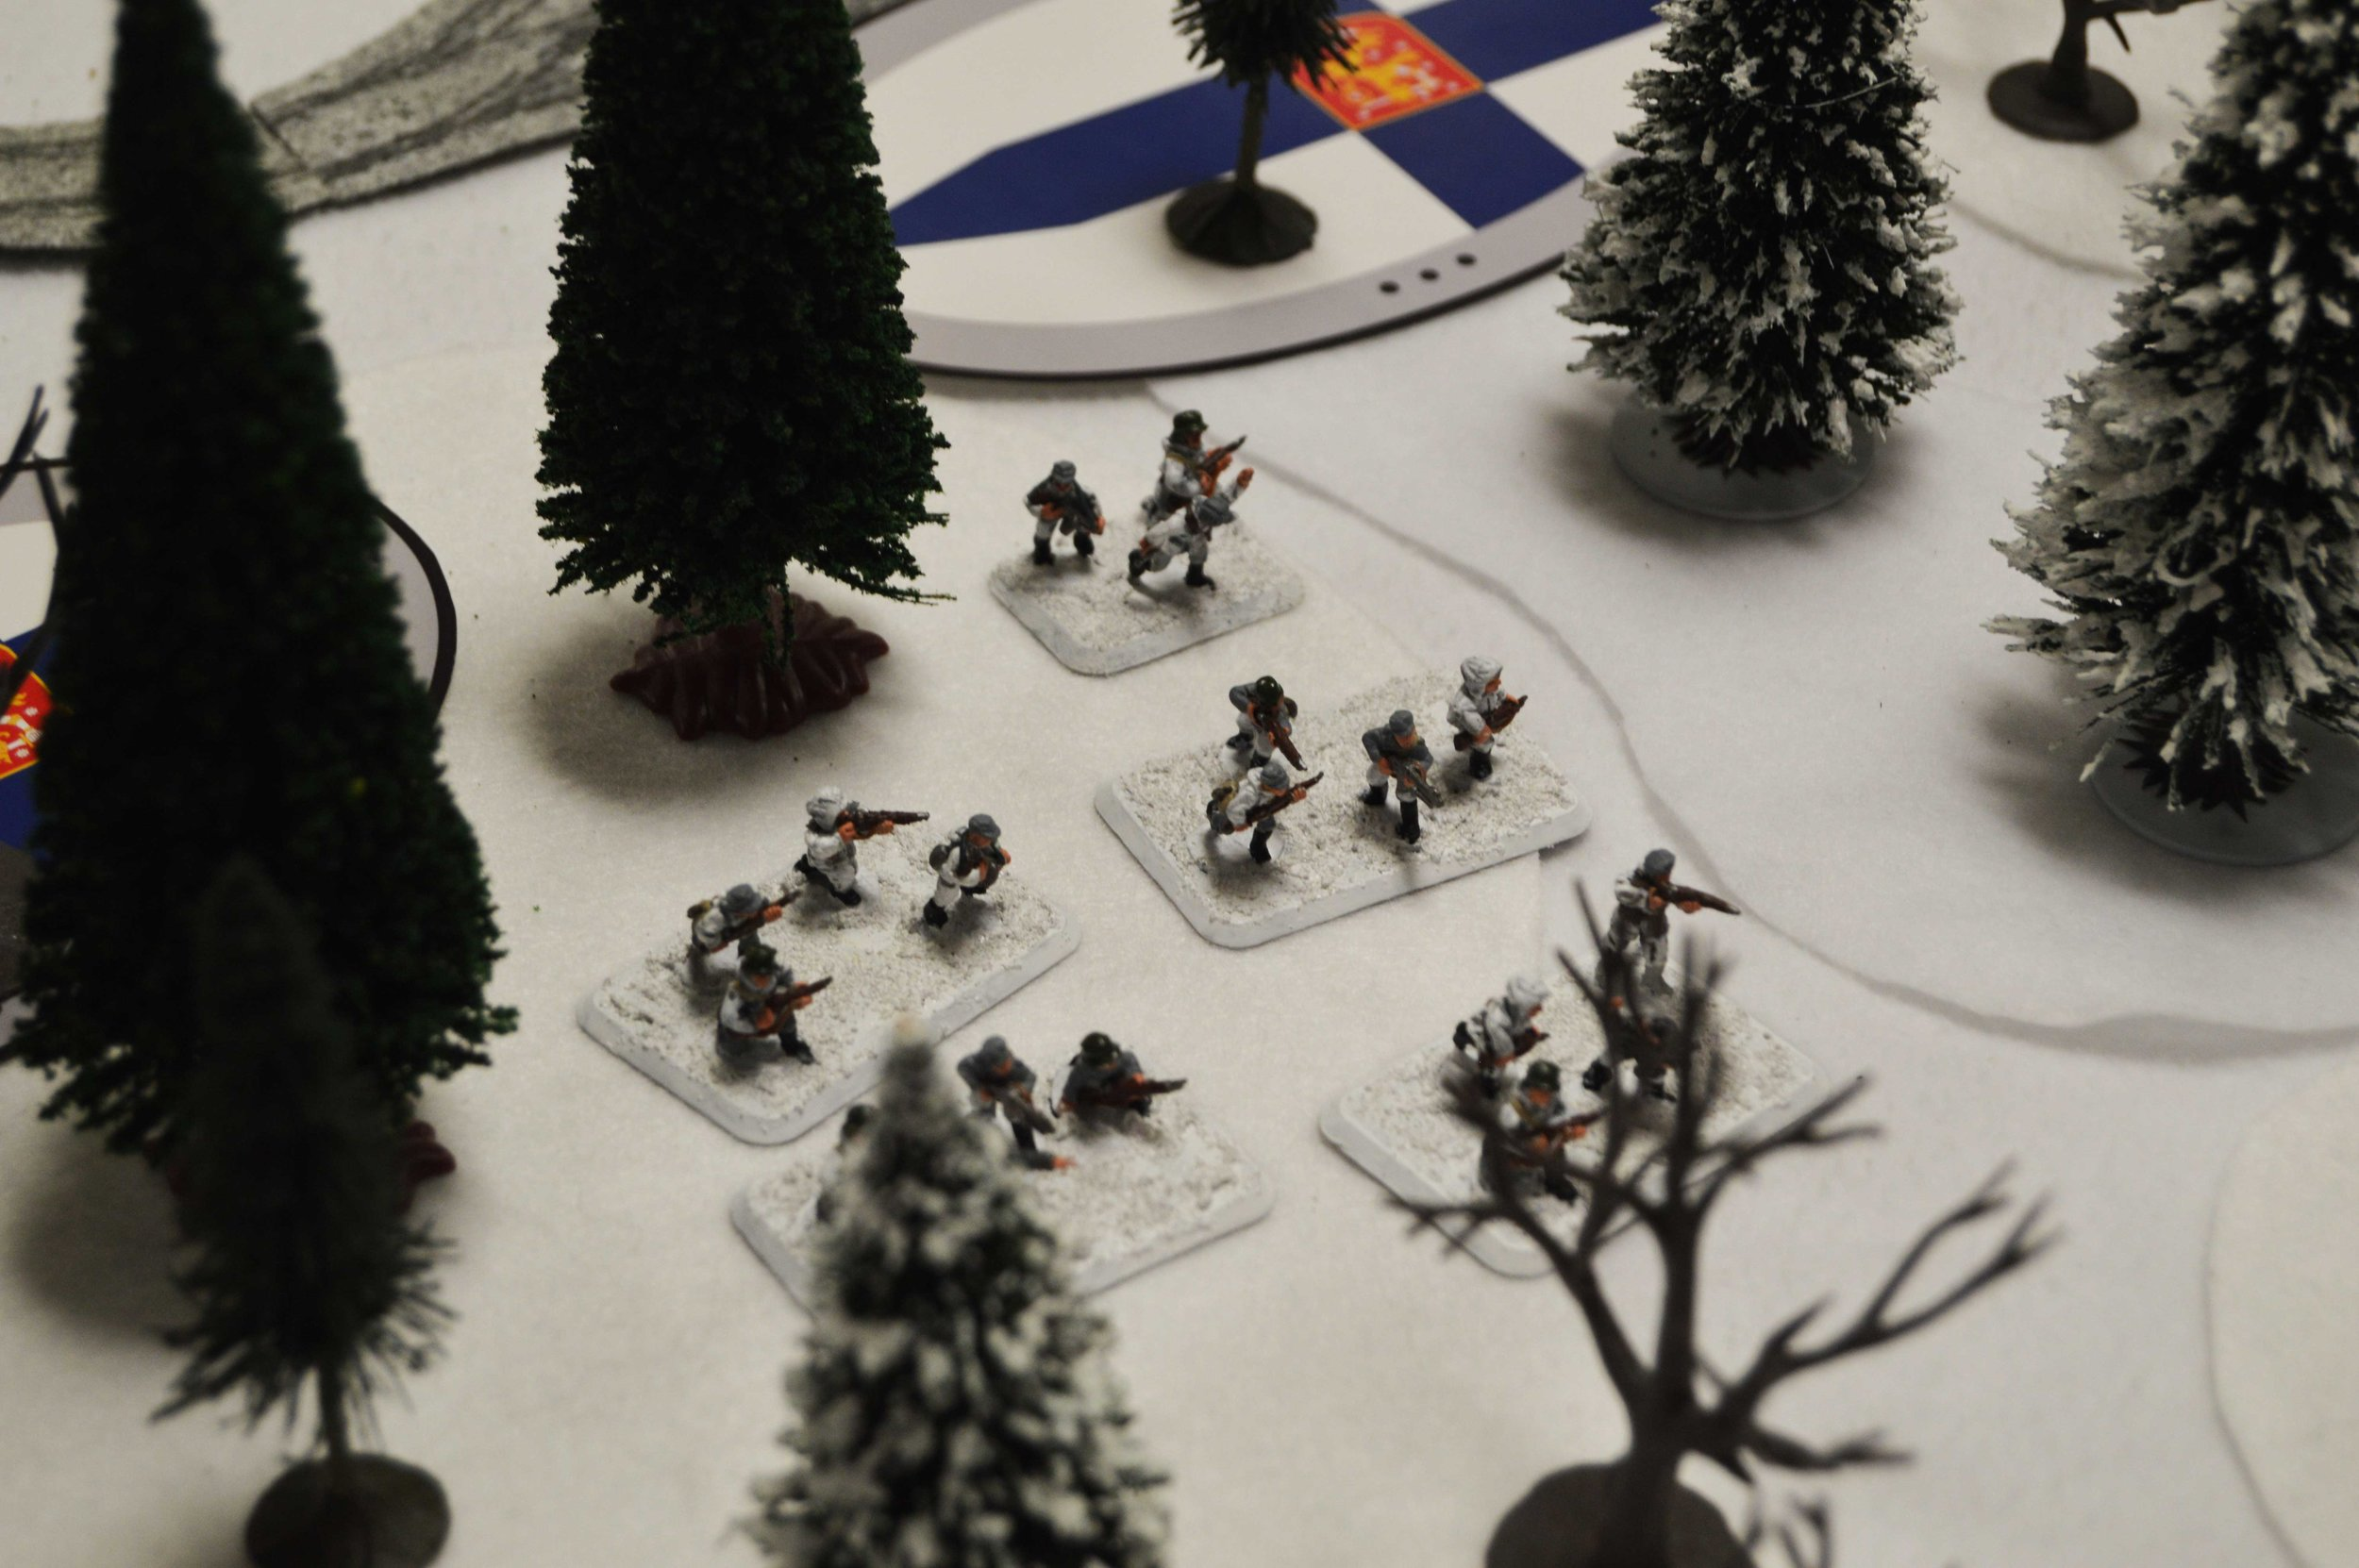 The Finnish infantry begin to appear in the woods near their starting position.